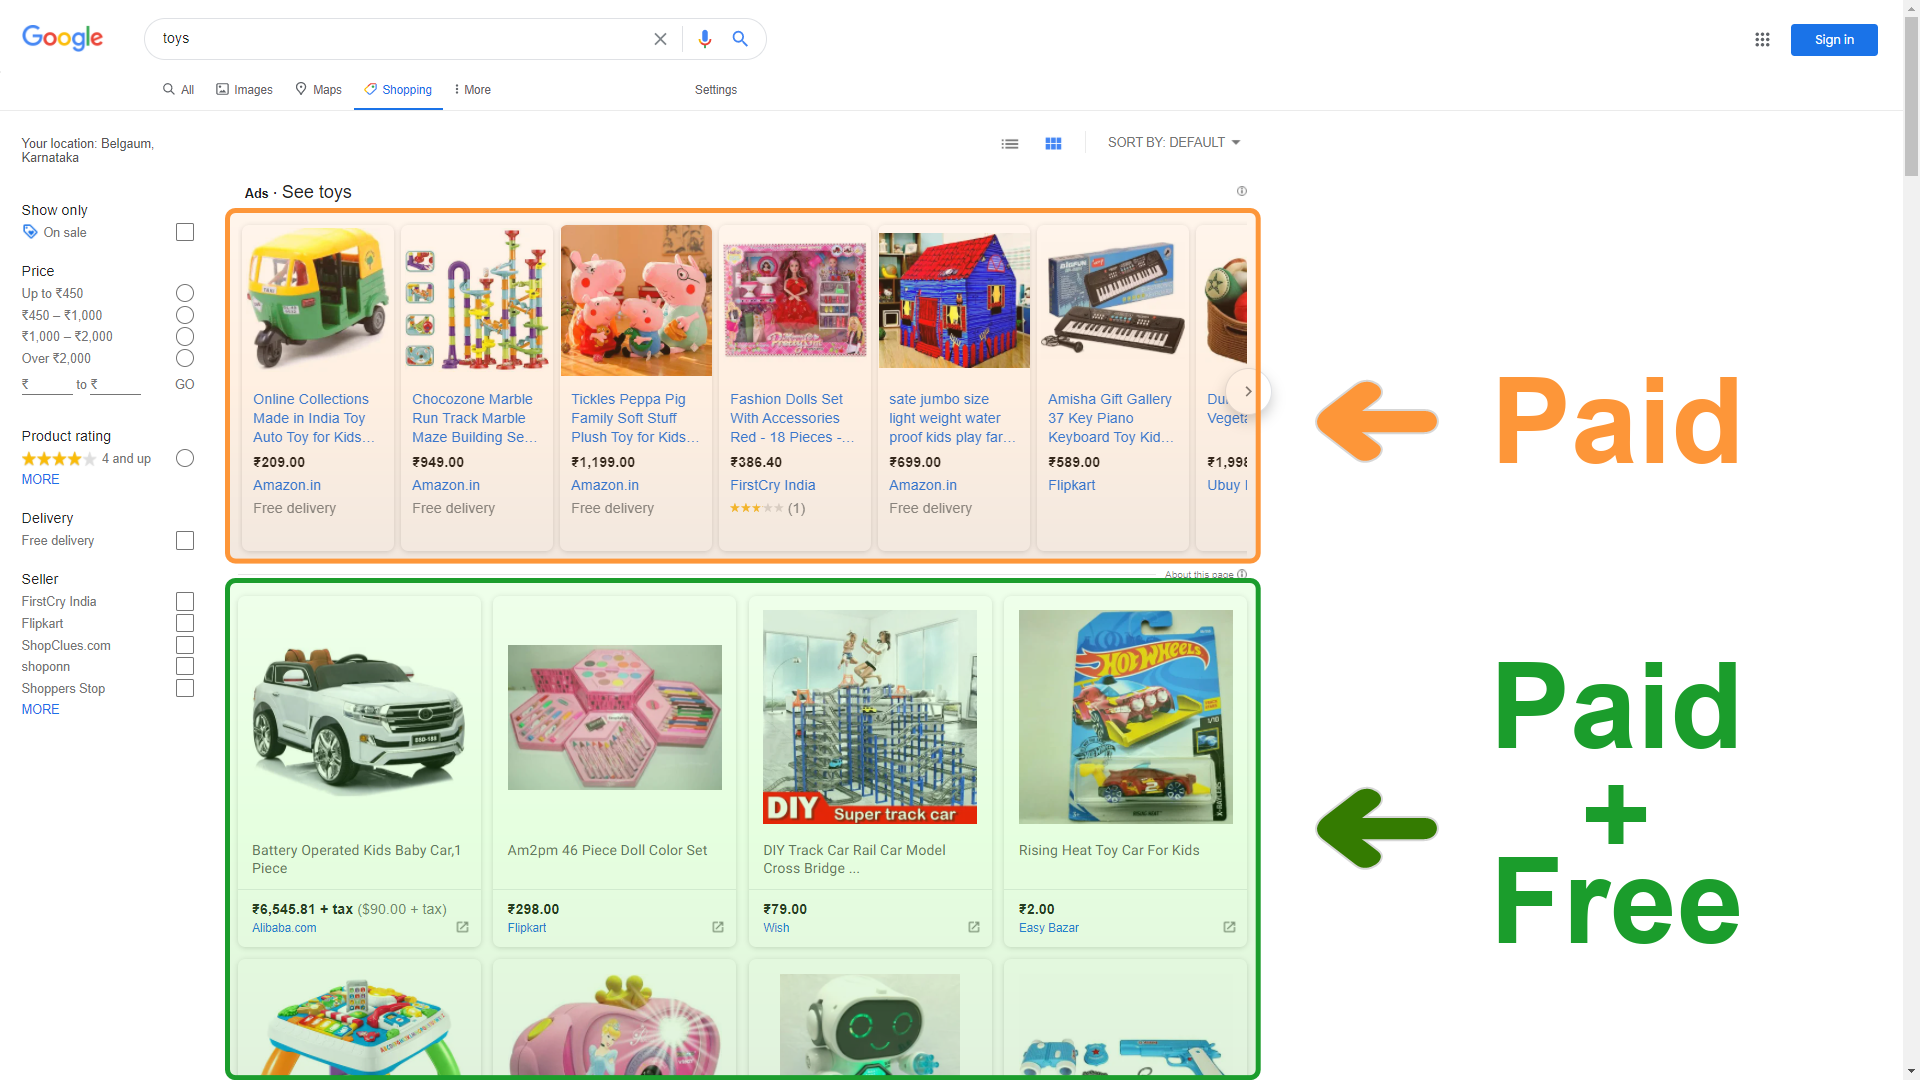 Google Shopping results paid and free listings